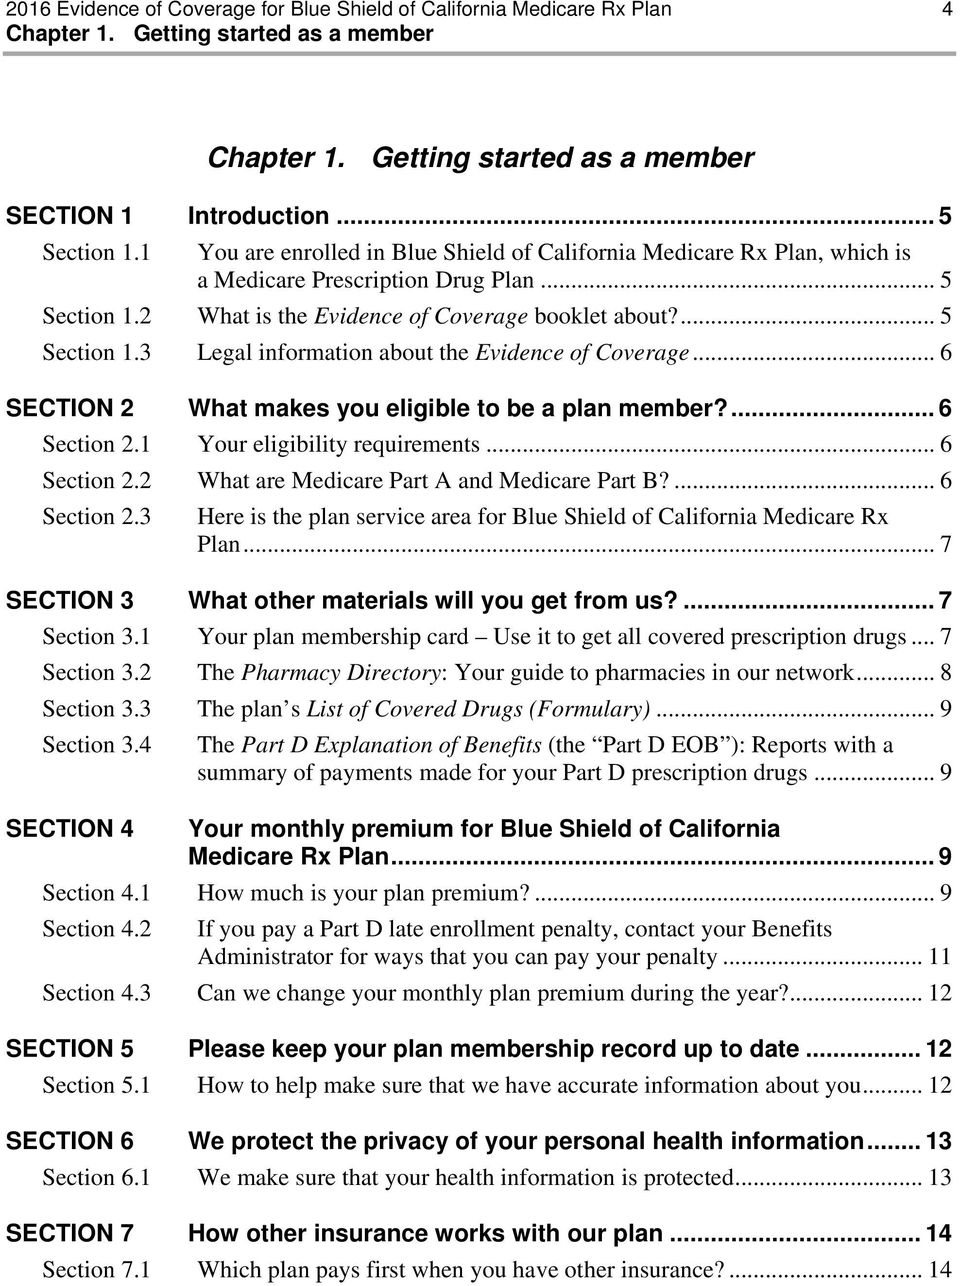 .. 6 SECTION 2 What makes you eligible to be a plan member?... 6 Section 2.1 Your eligibility requirements... 6 Section 2.2 What are Medicare Part A and Medicare Part B?... 6 Section 2.3 Here is the plan service area for Blue Shield of California Medicare Rx Plan.